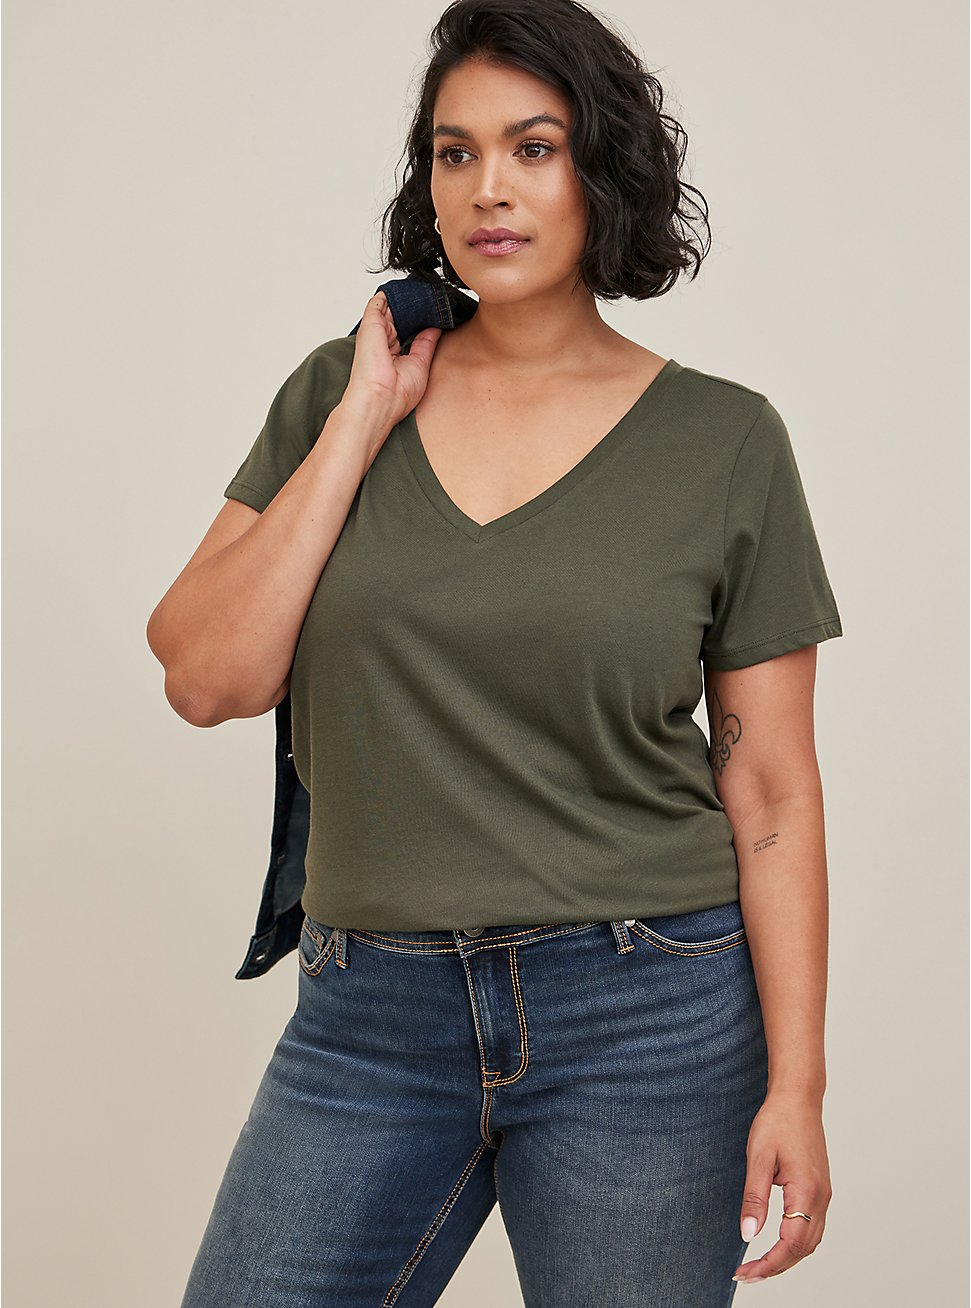 Signature Jersey Olive Green V-Neck Tee, DEEP DEPTHS, hi-res